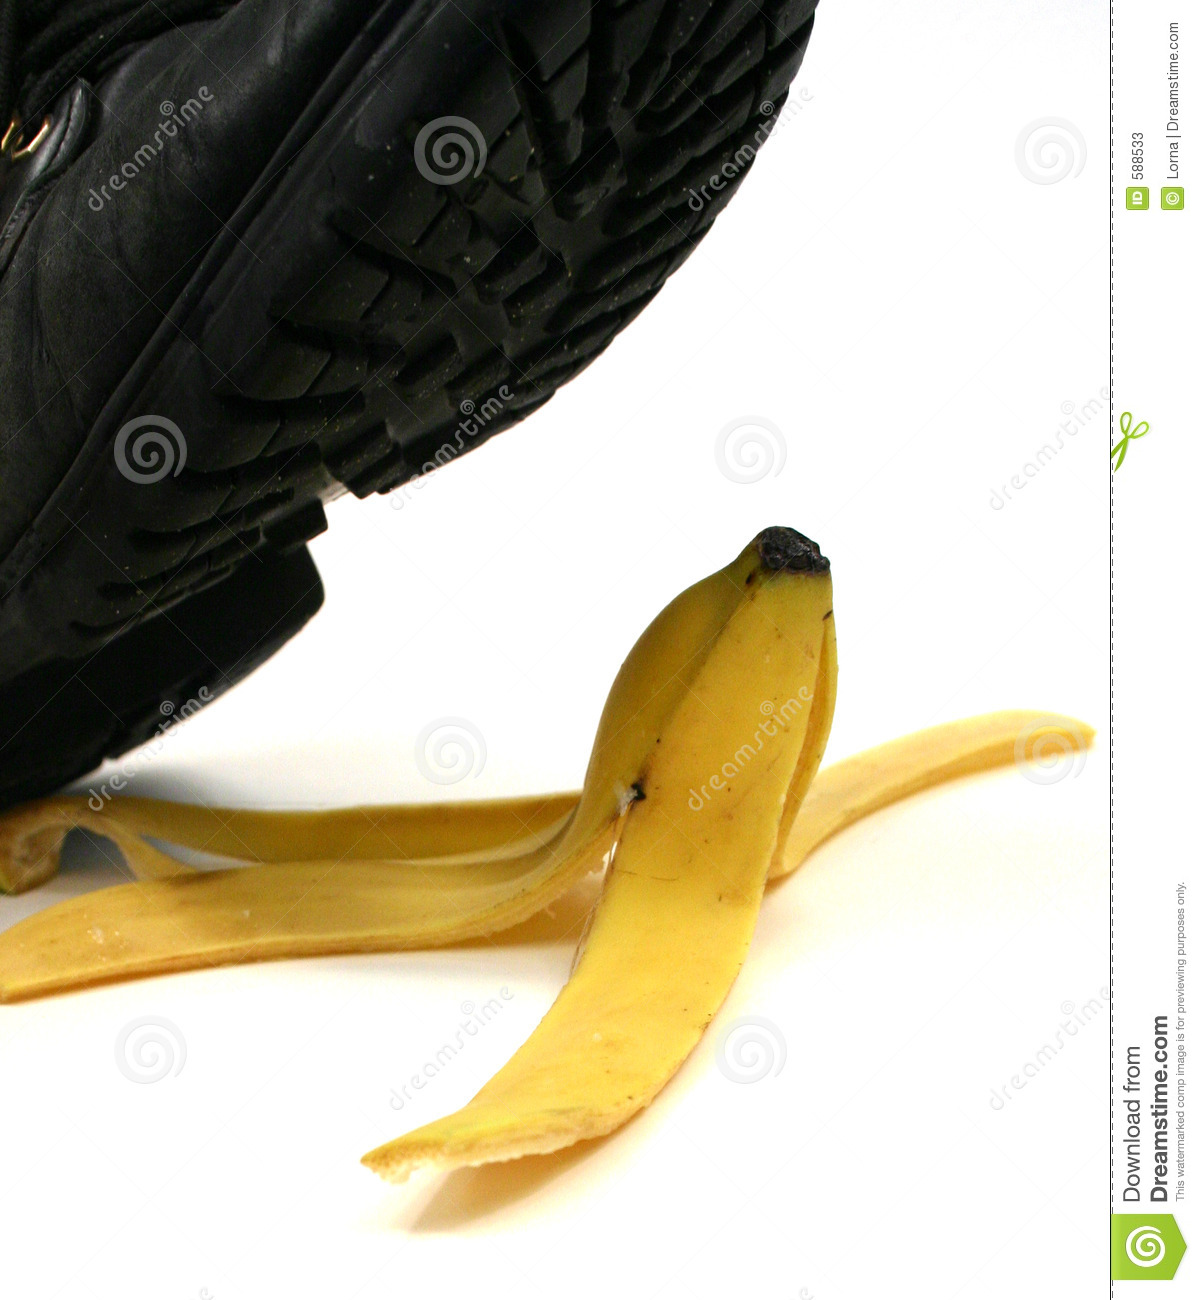 Banana Peel Slipping Stock Photos - Image: 588533